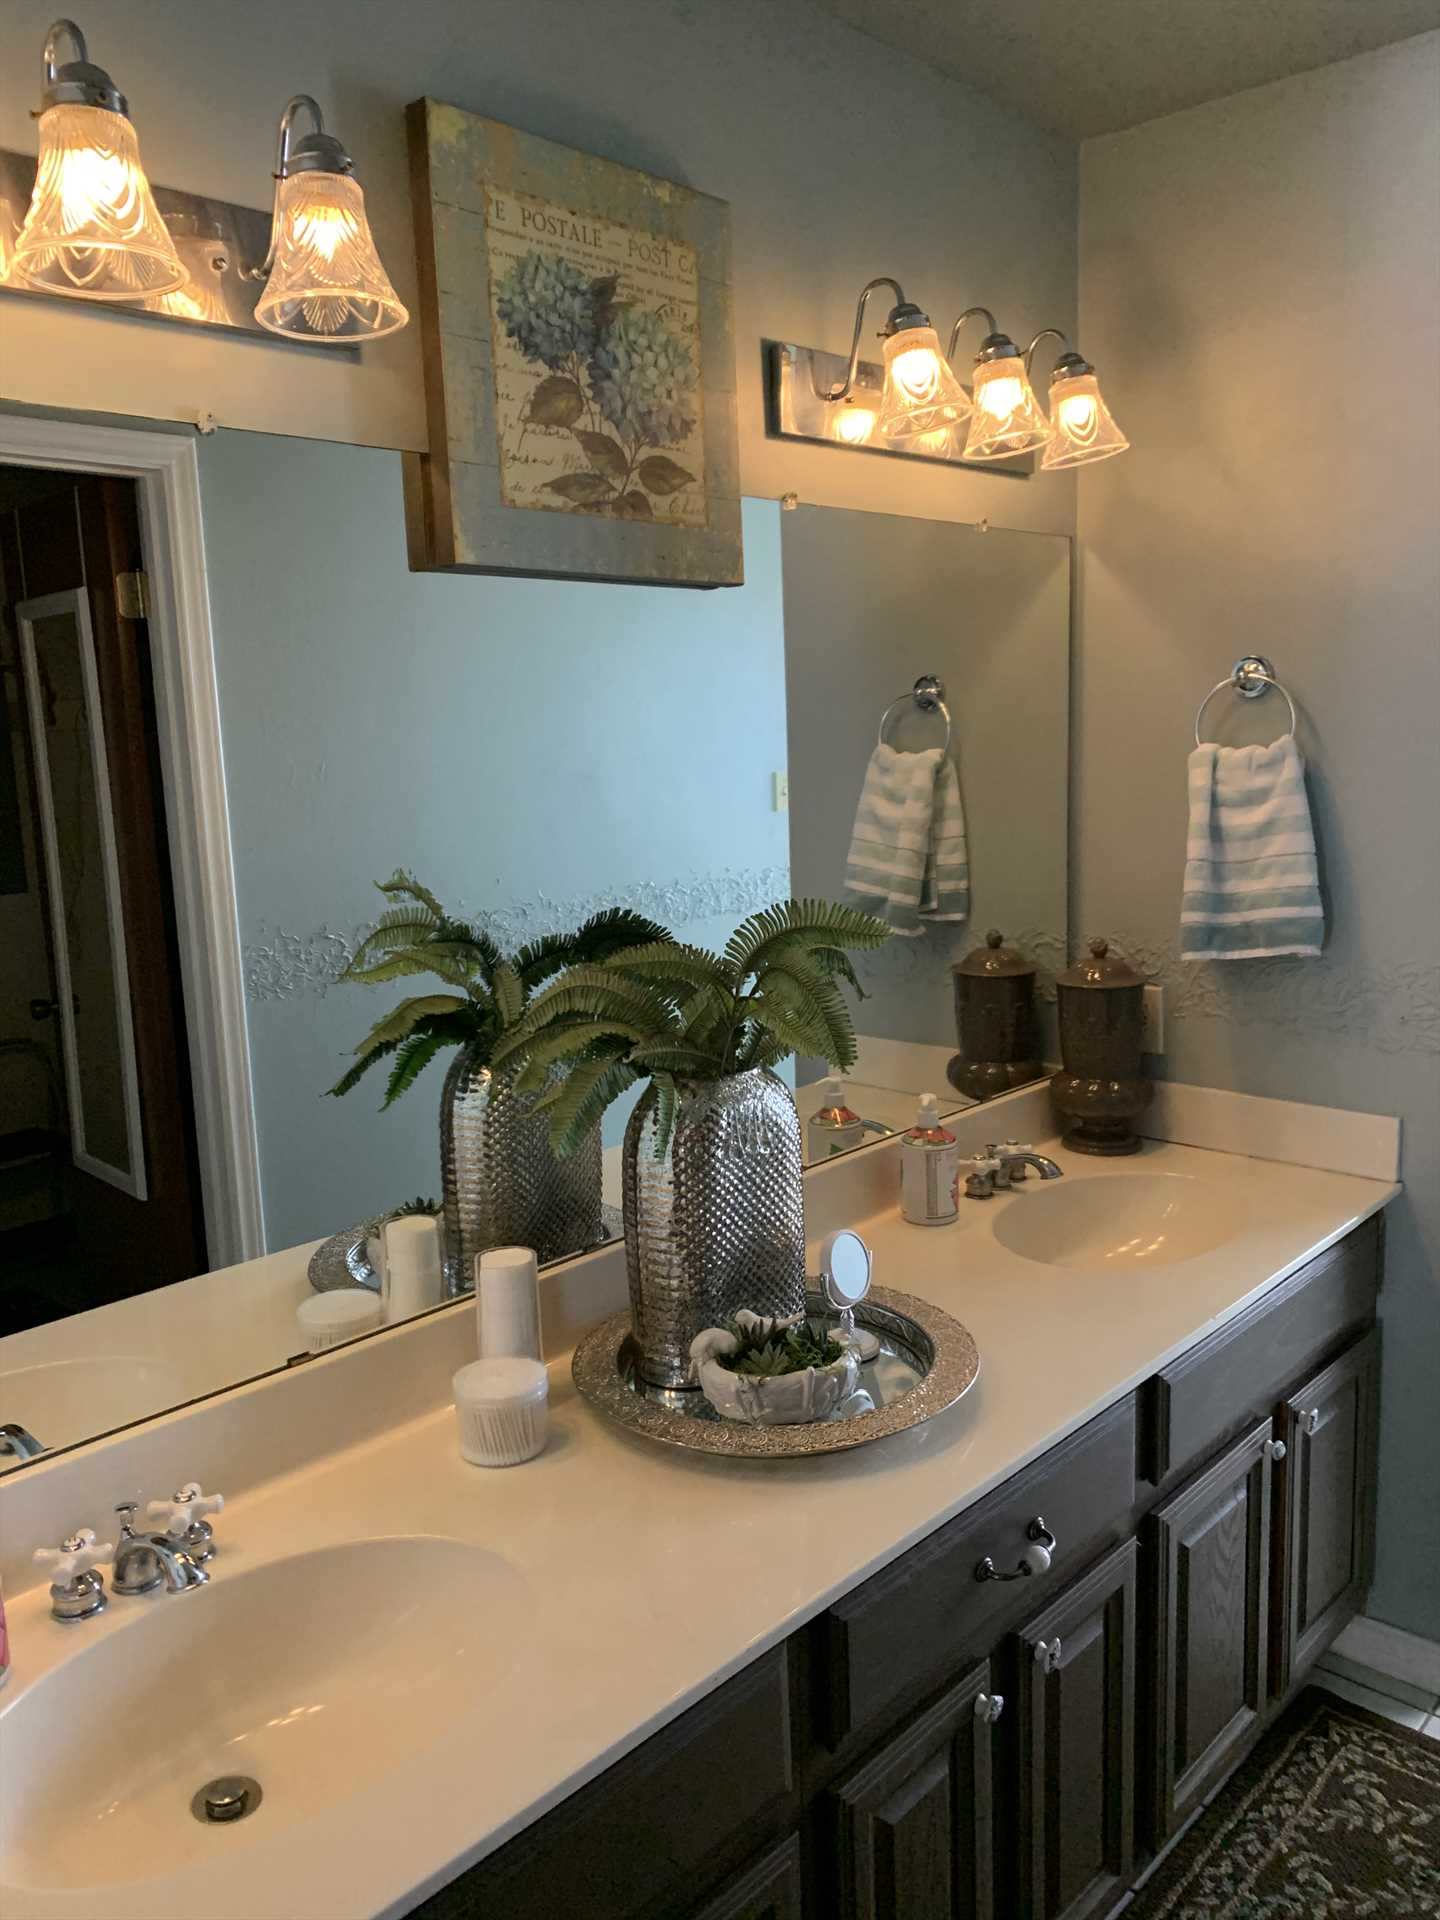 Along with a roomy double vanity, the master bath comes with clean and fluffy bath linens, as well (as do all the baths here).